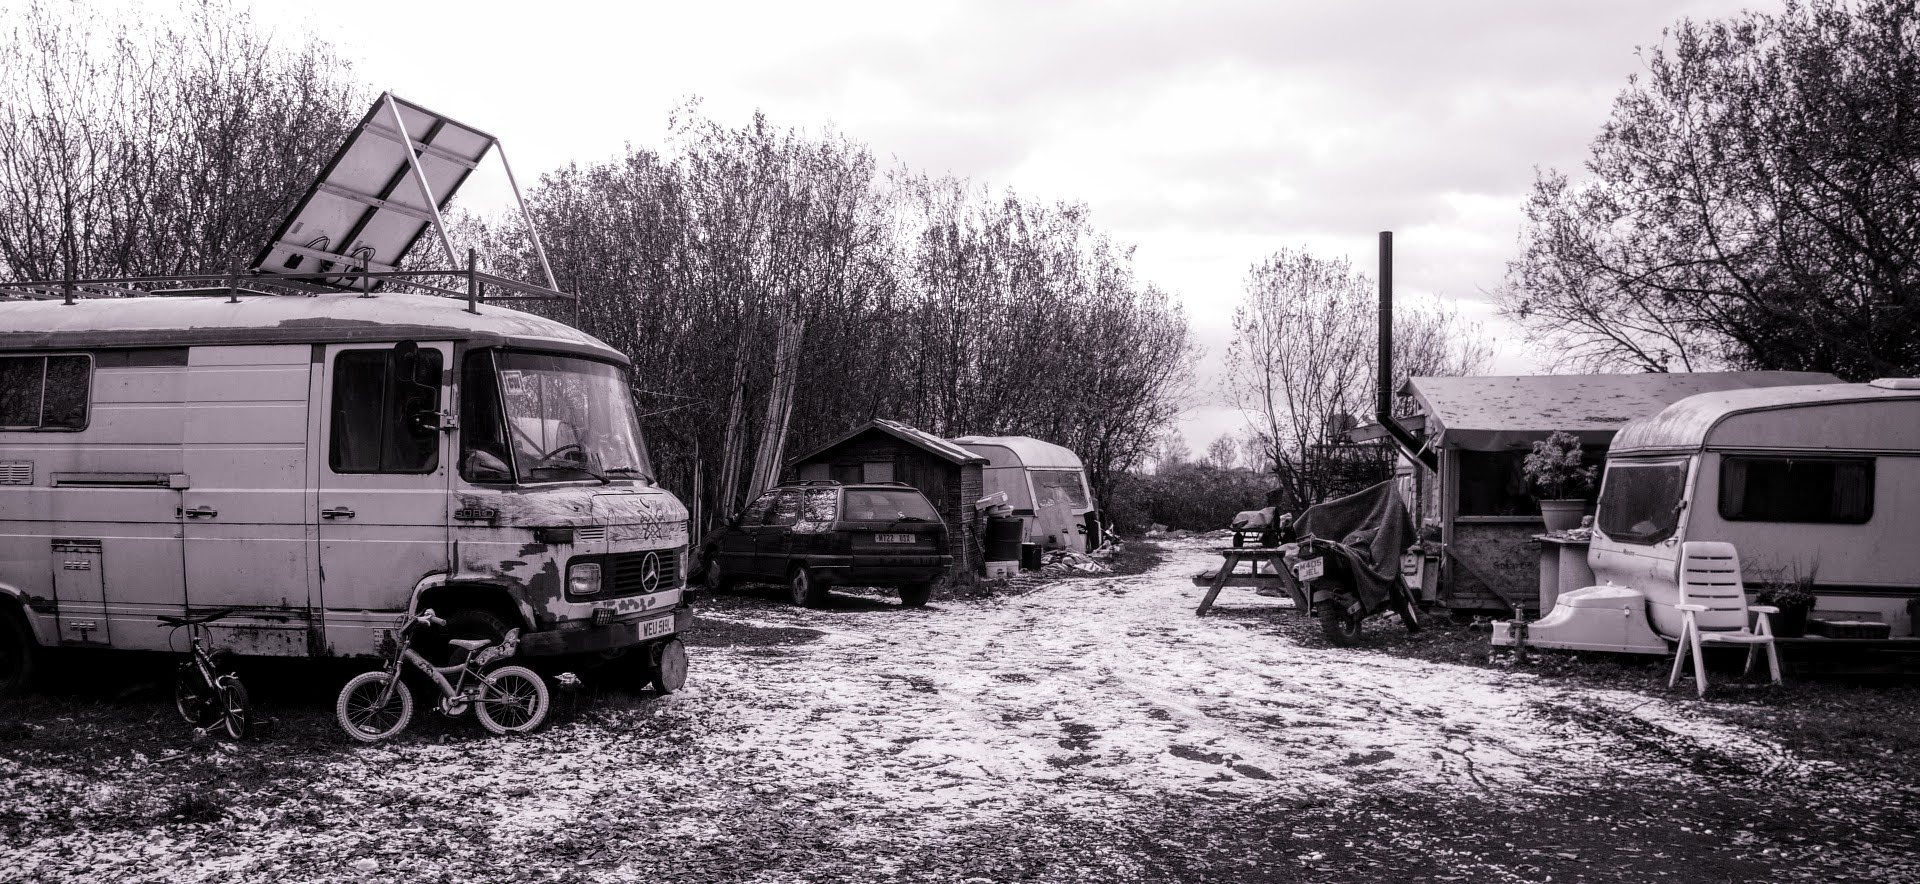 Traveller Site in the Snow